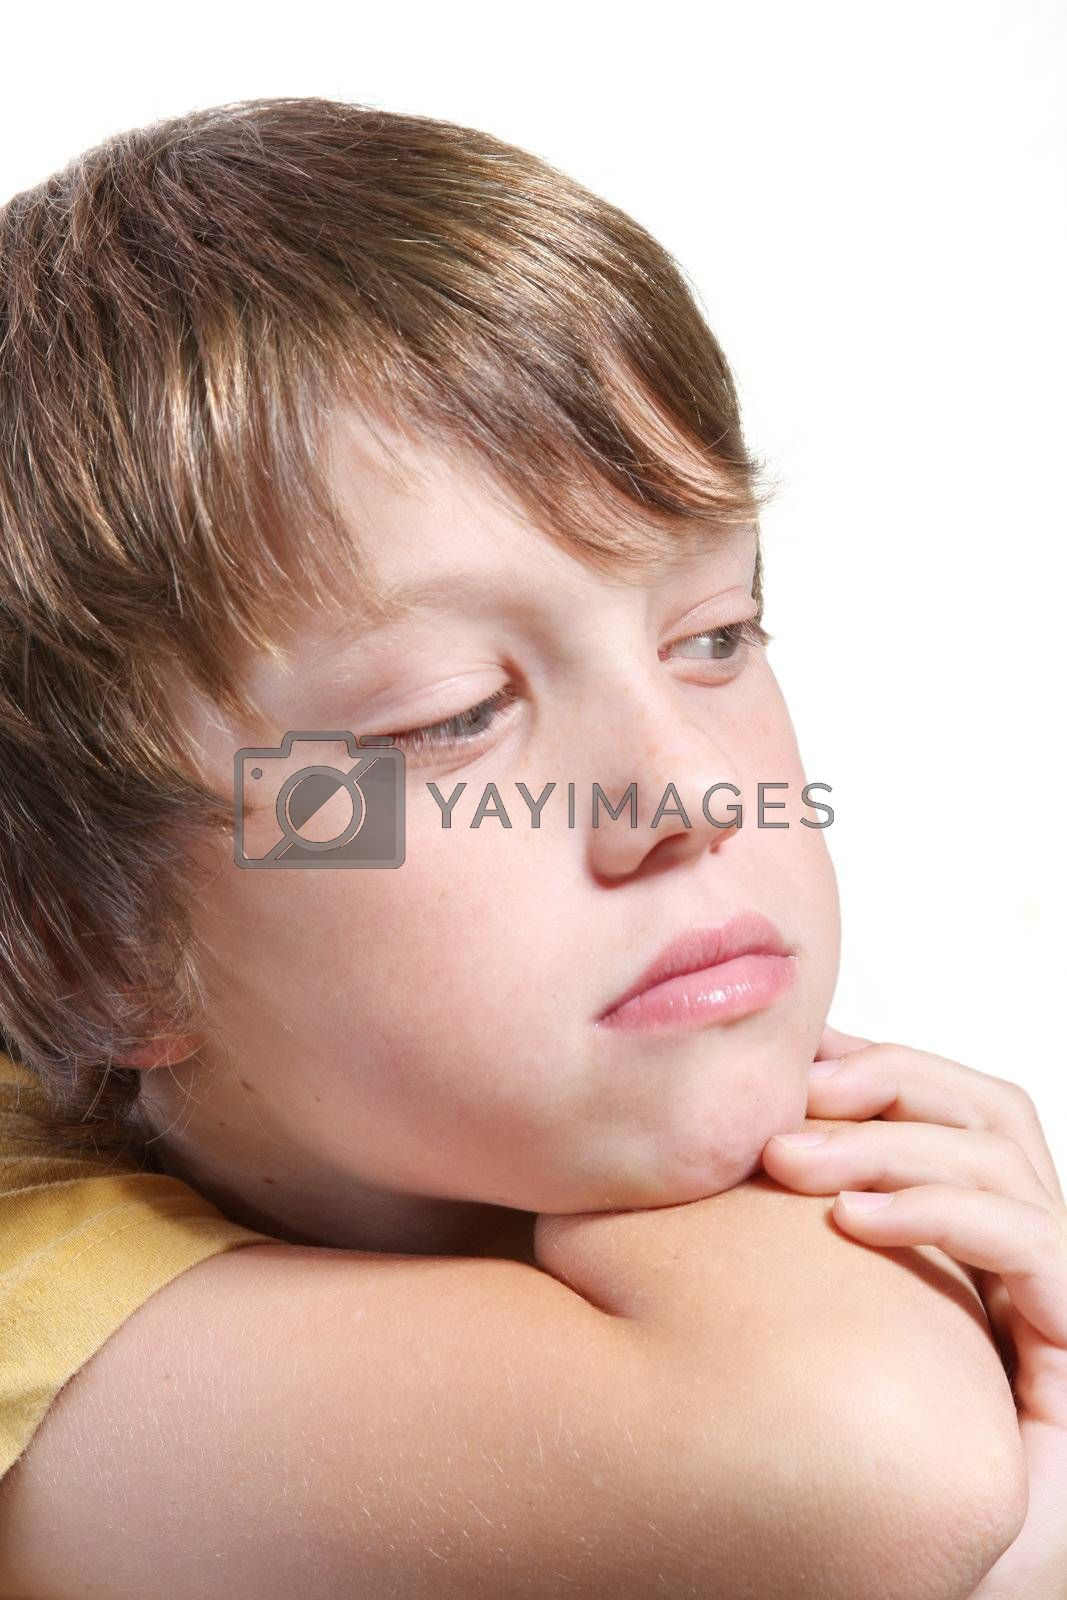 isolated child with thoughtful expression